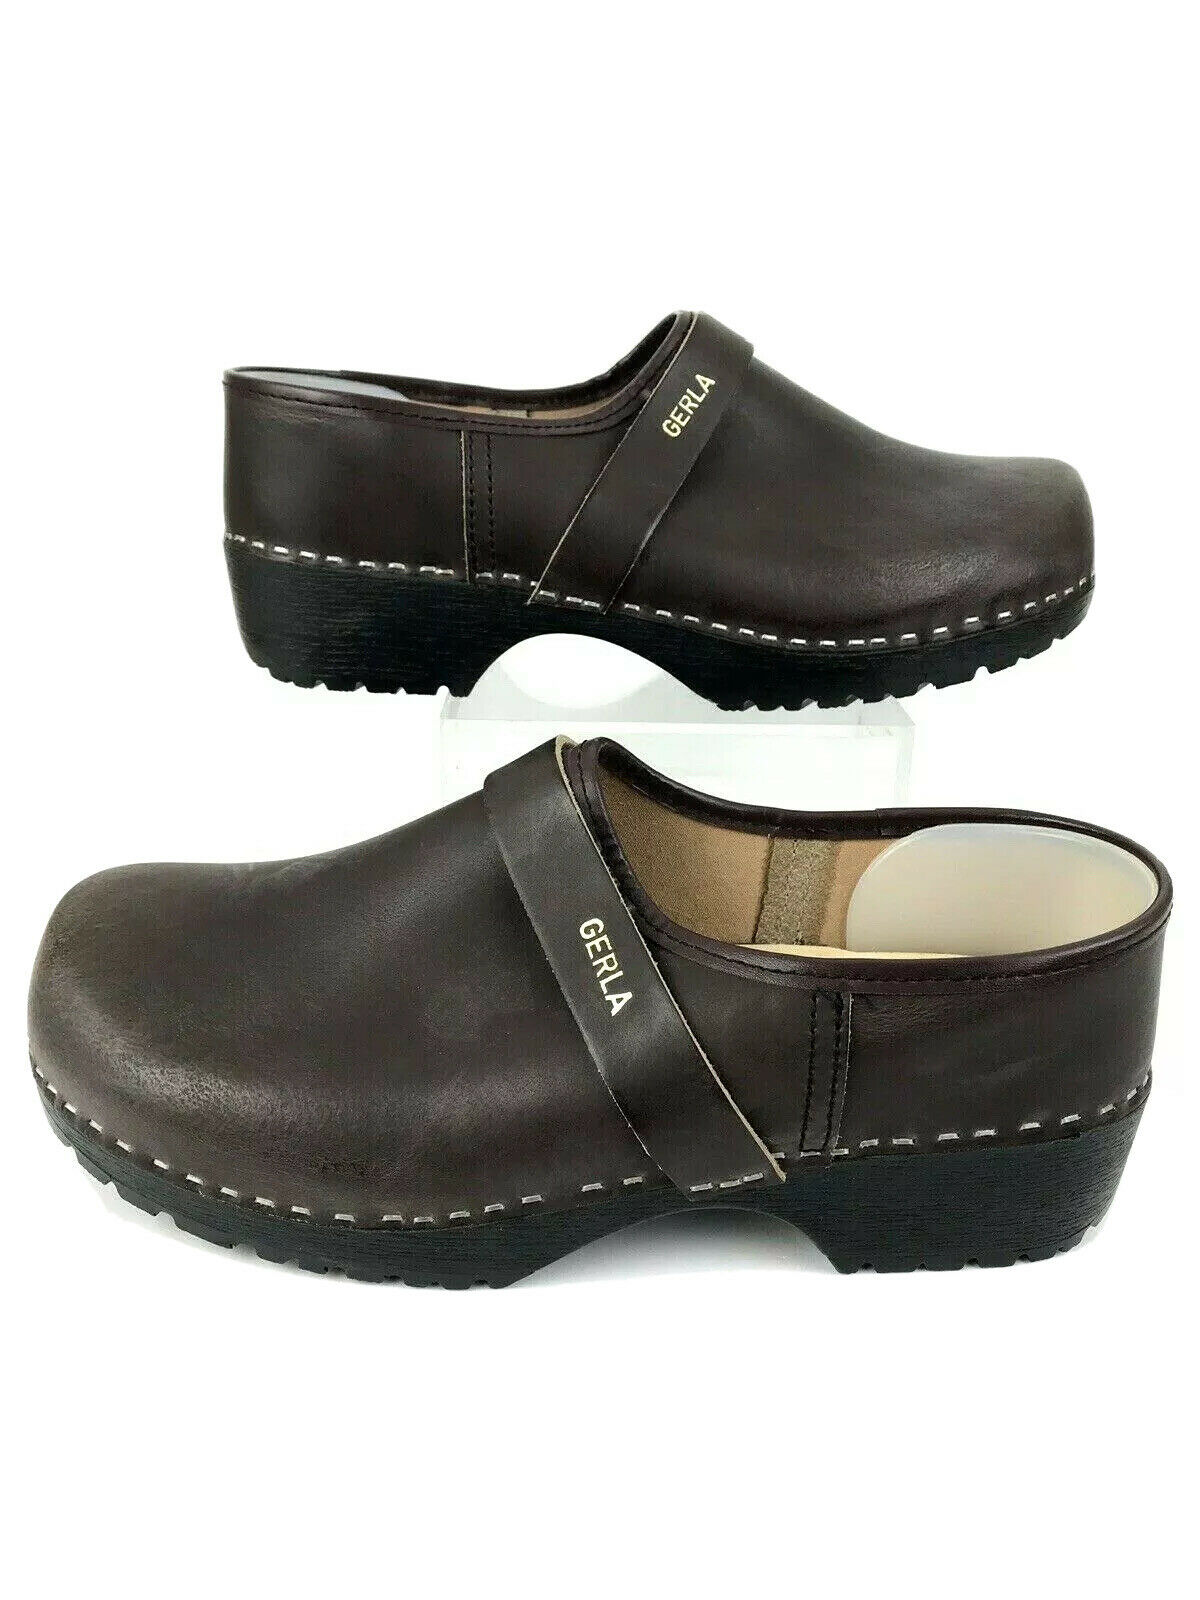 Mens Gerla Leather Shoes Wood Insoles Brown Made in Holland EUR Size 46